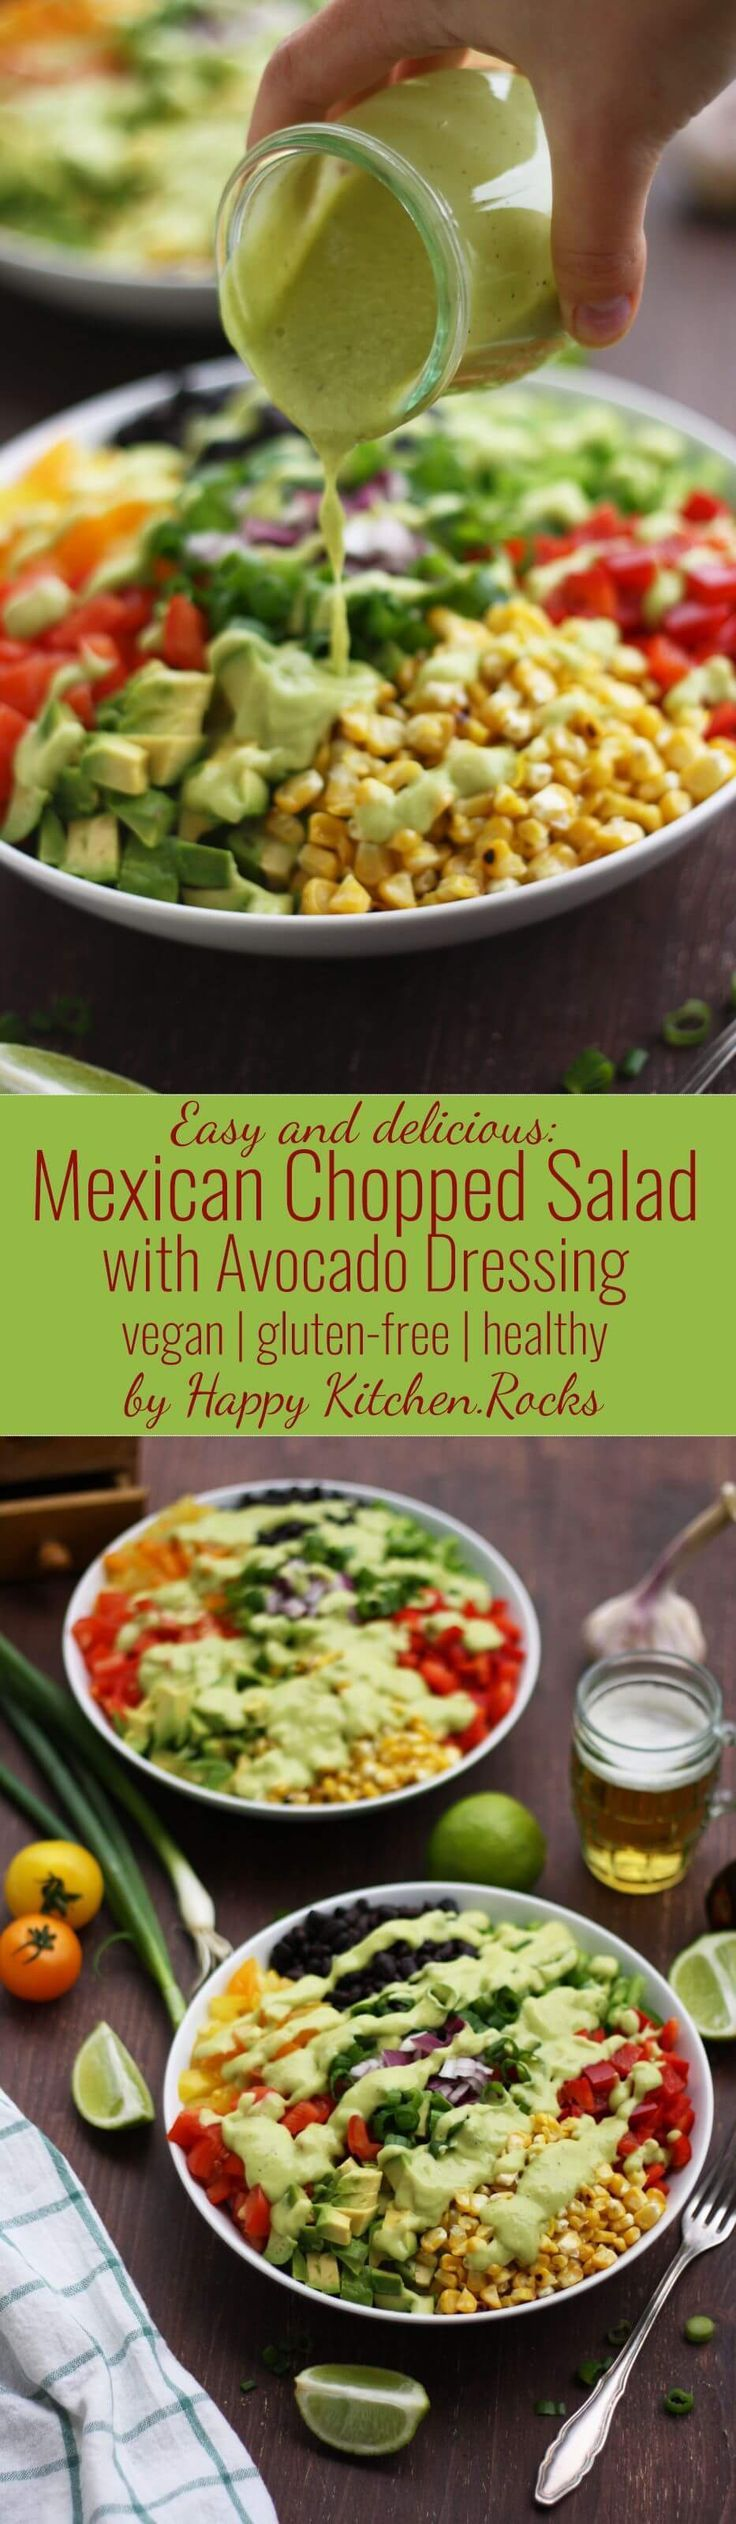 Easy and delicious gluten-free recipe of a vegan Mexican chopped salad with avoc...,  Easy and delicious gluten-free recipe of a vegan Mexican chopped salad with avoc...,